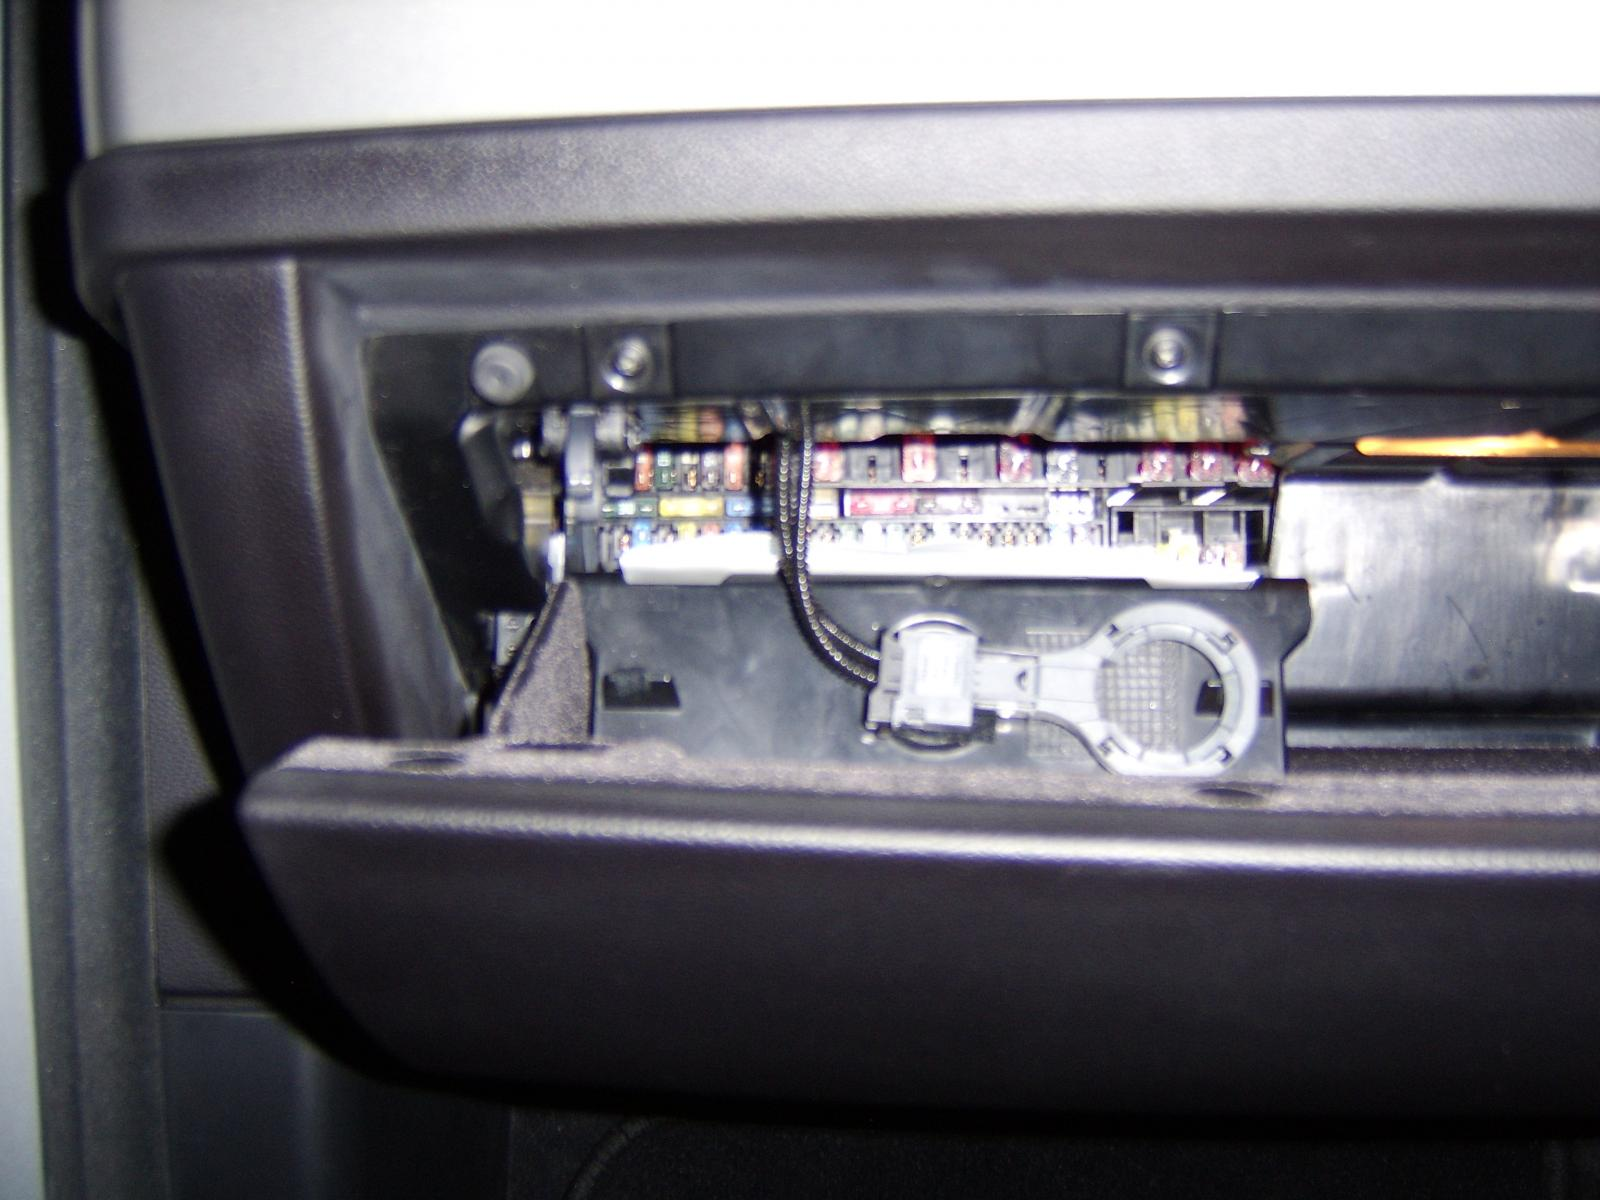 Location Of Fuse Box For Cigarett Lighter Bimmerfest Bmw Forums Opened